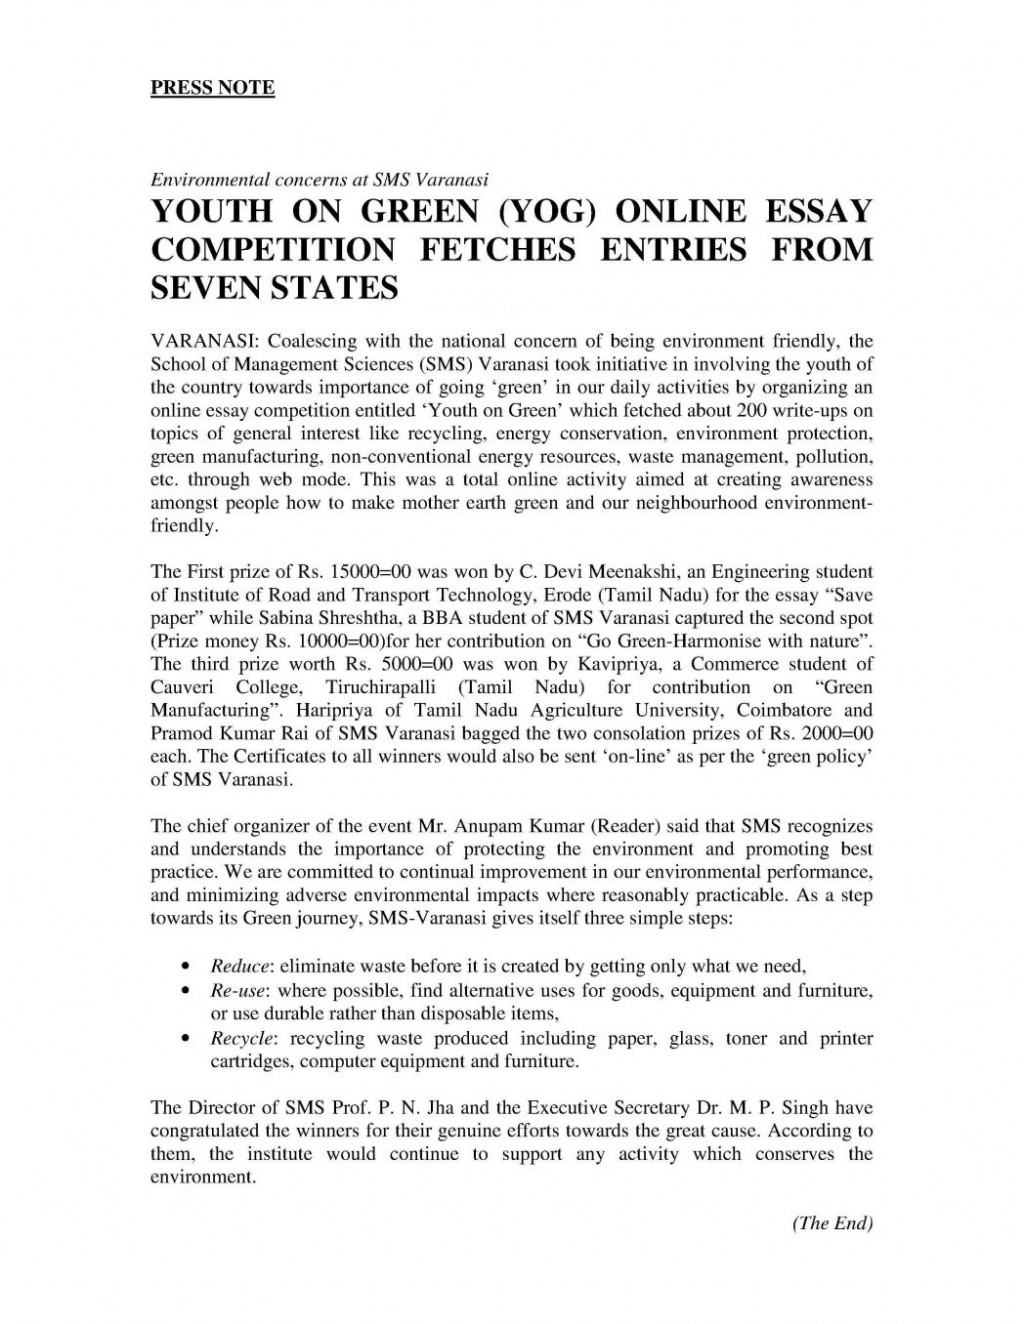 020 Best Essays For College Essay On Good Habits How Tot Application Online Yog Press Re About Yourself Examples Your Background Failure Prompt Off Hook 1048x1356 Example Amazing To Start An Ways With A Question Introduction Quote Apa Large